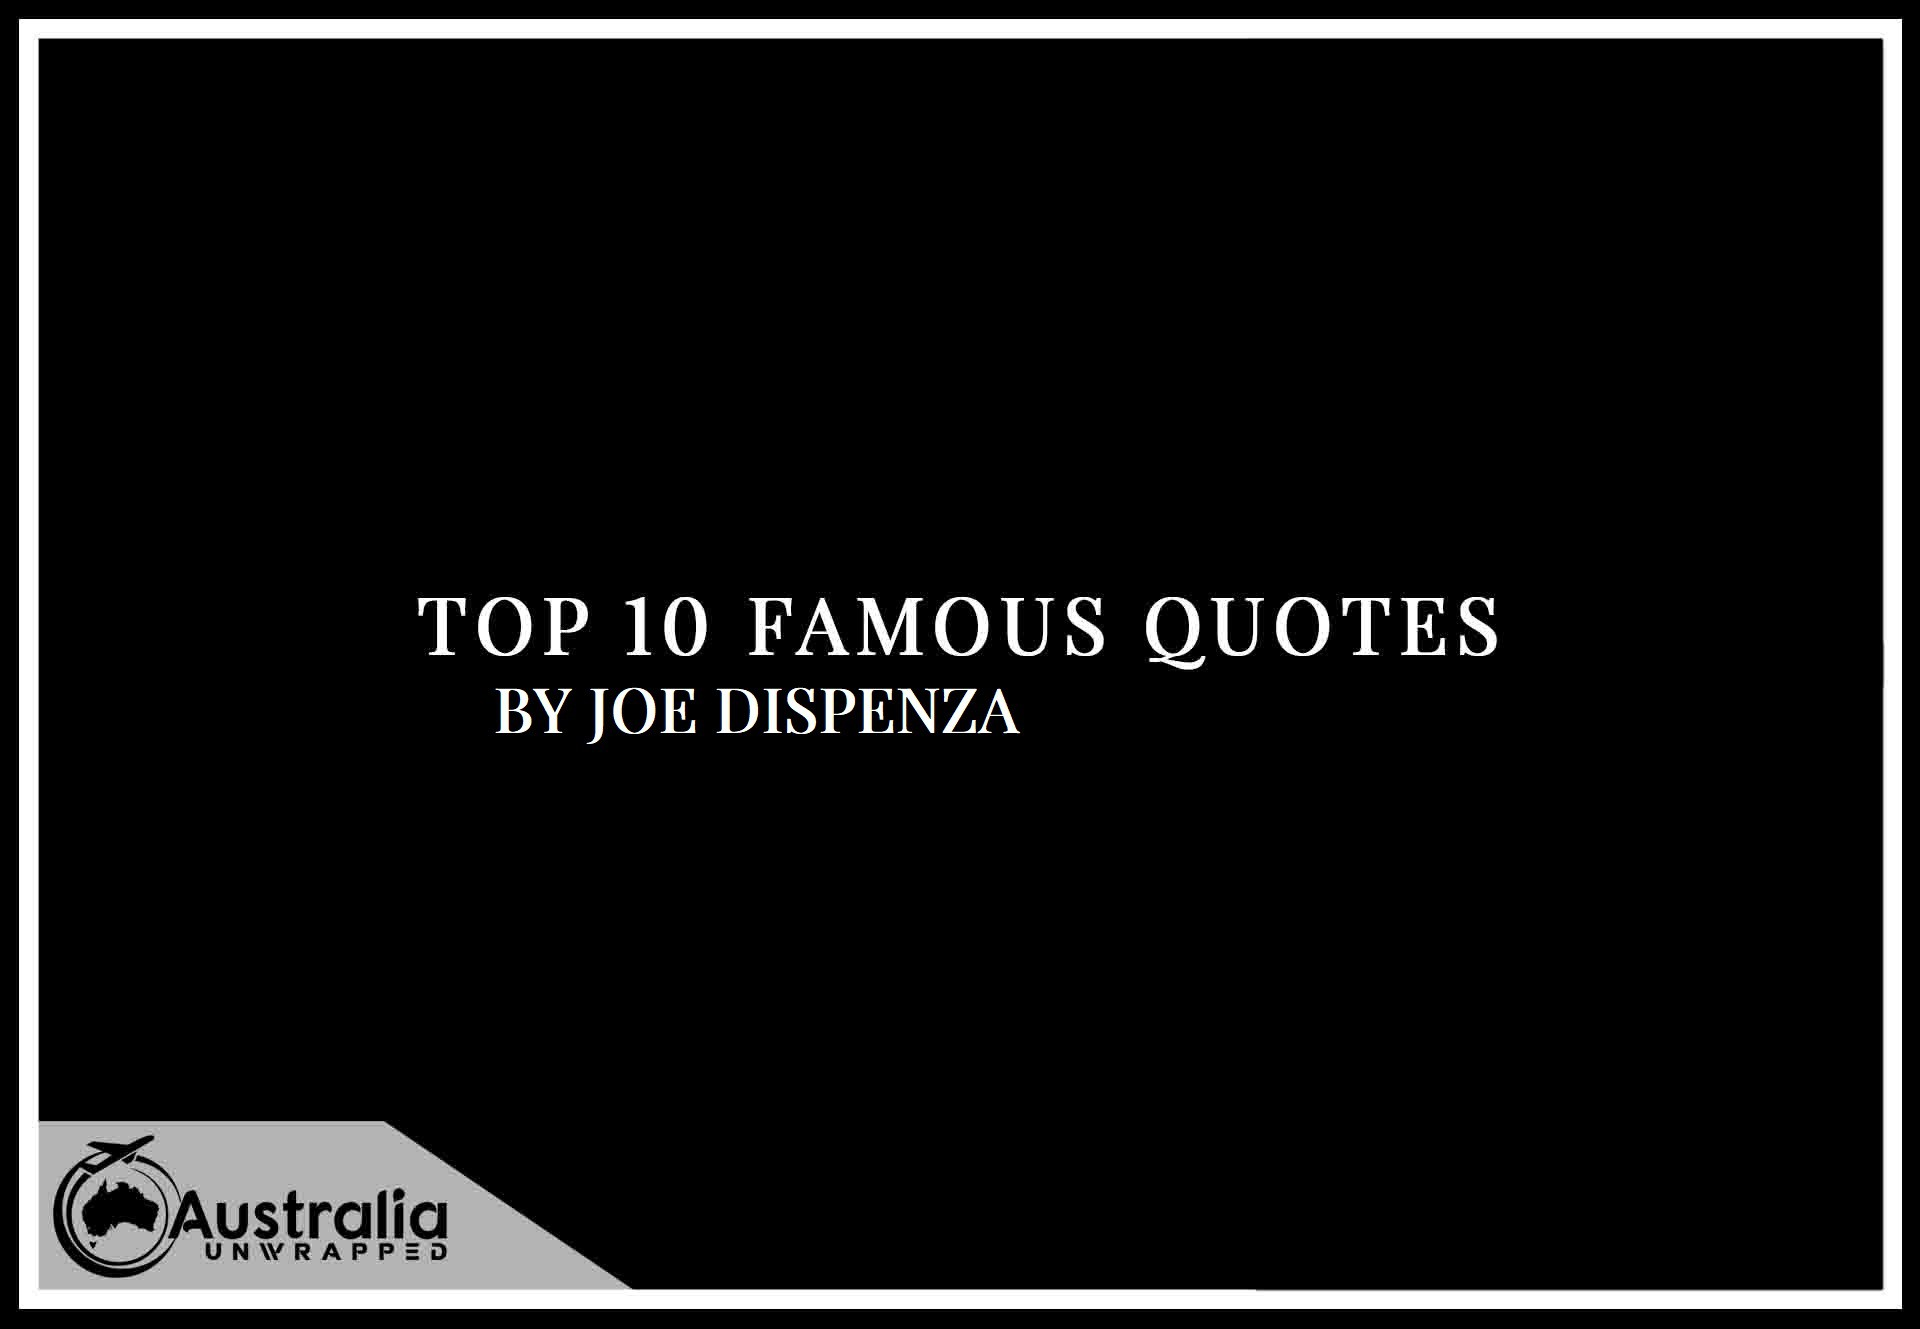 Top 10 Famous Quotes by Author Joe Dispenza